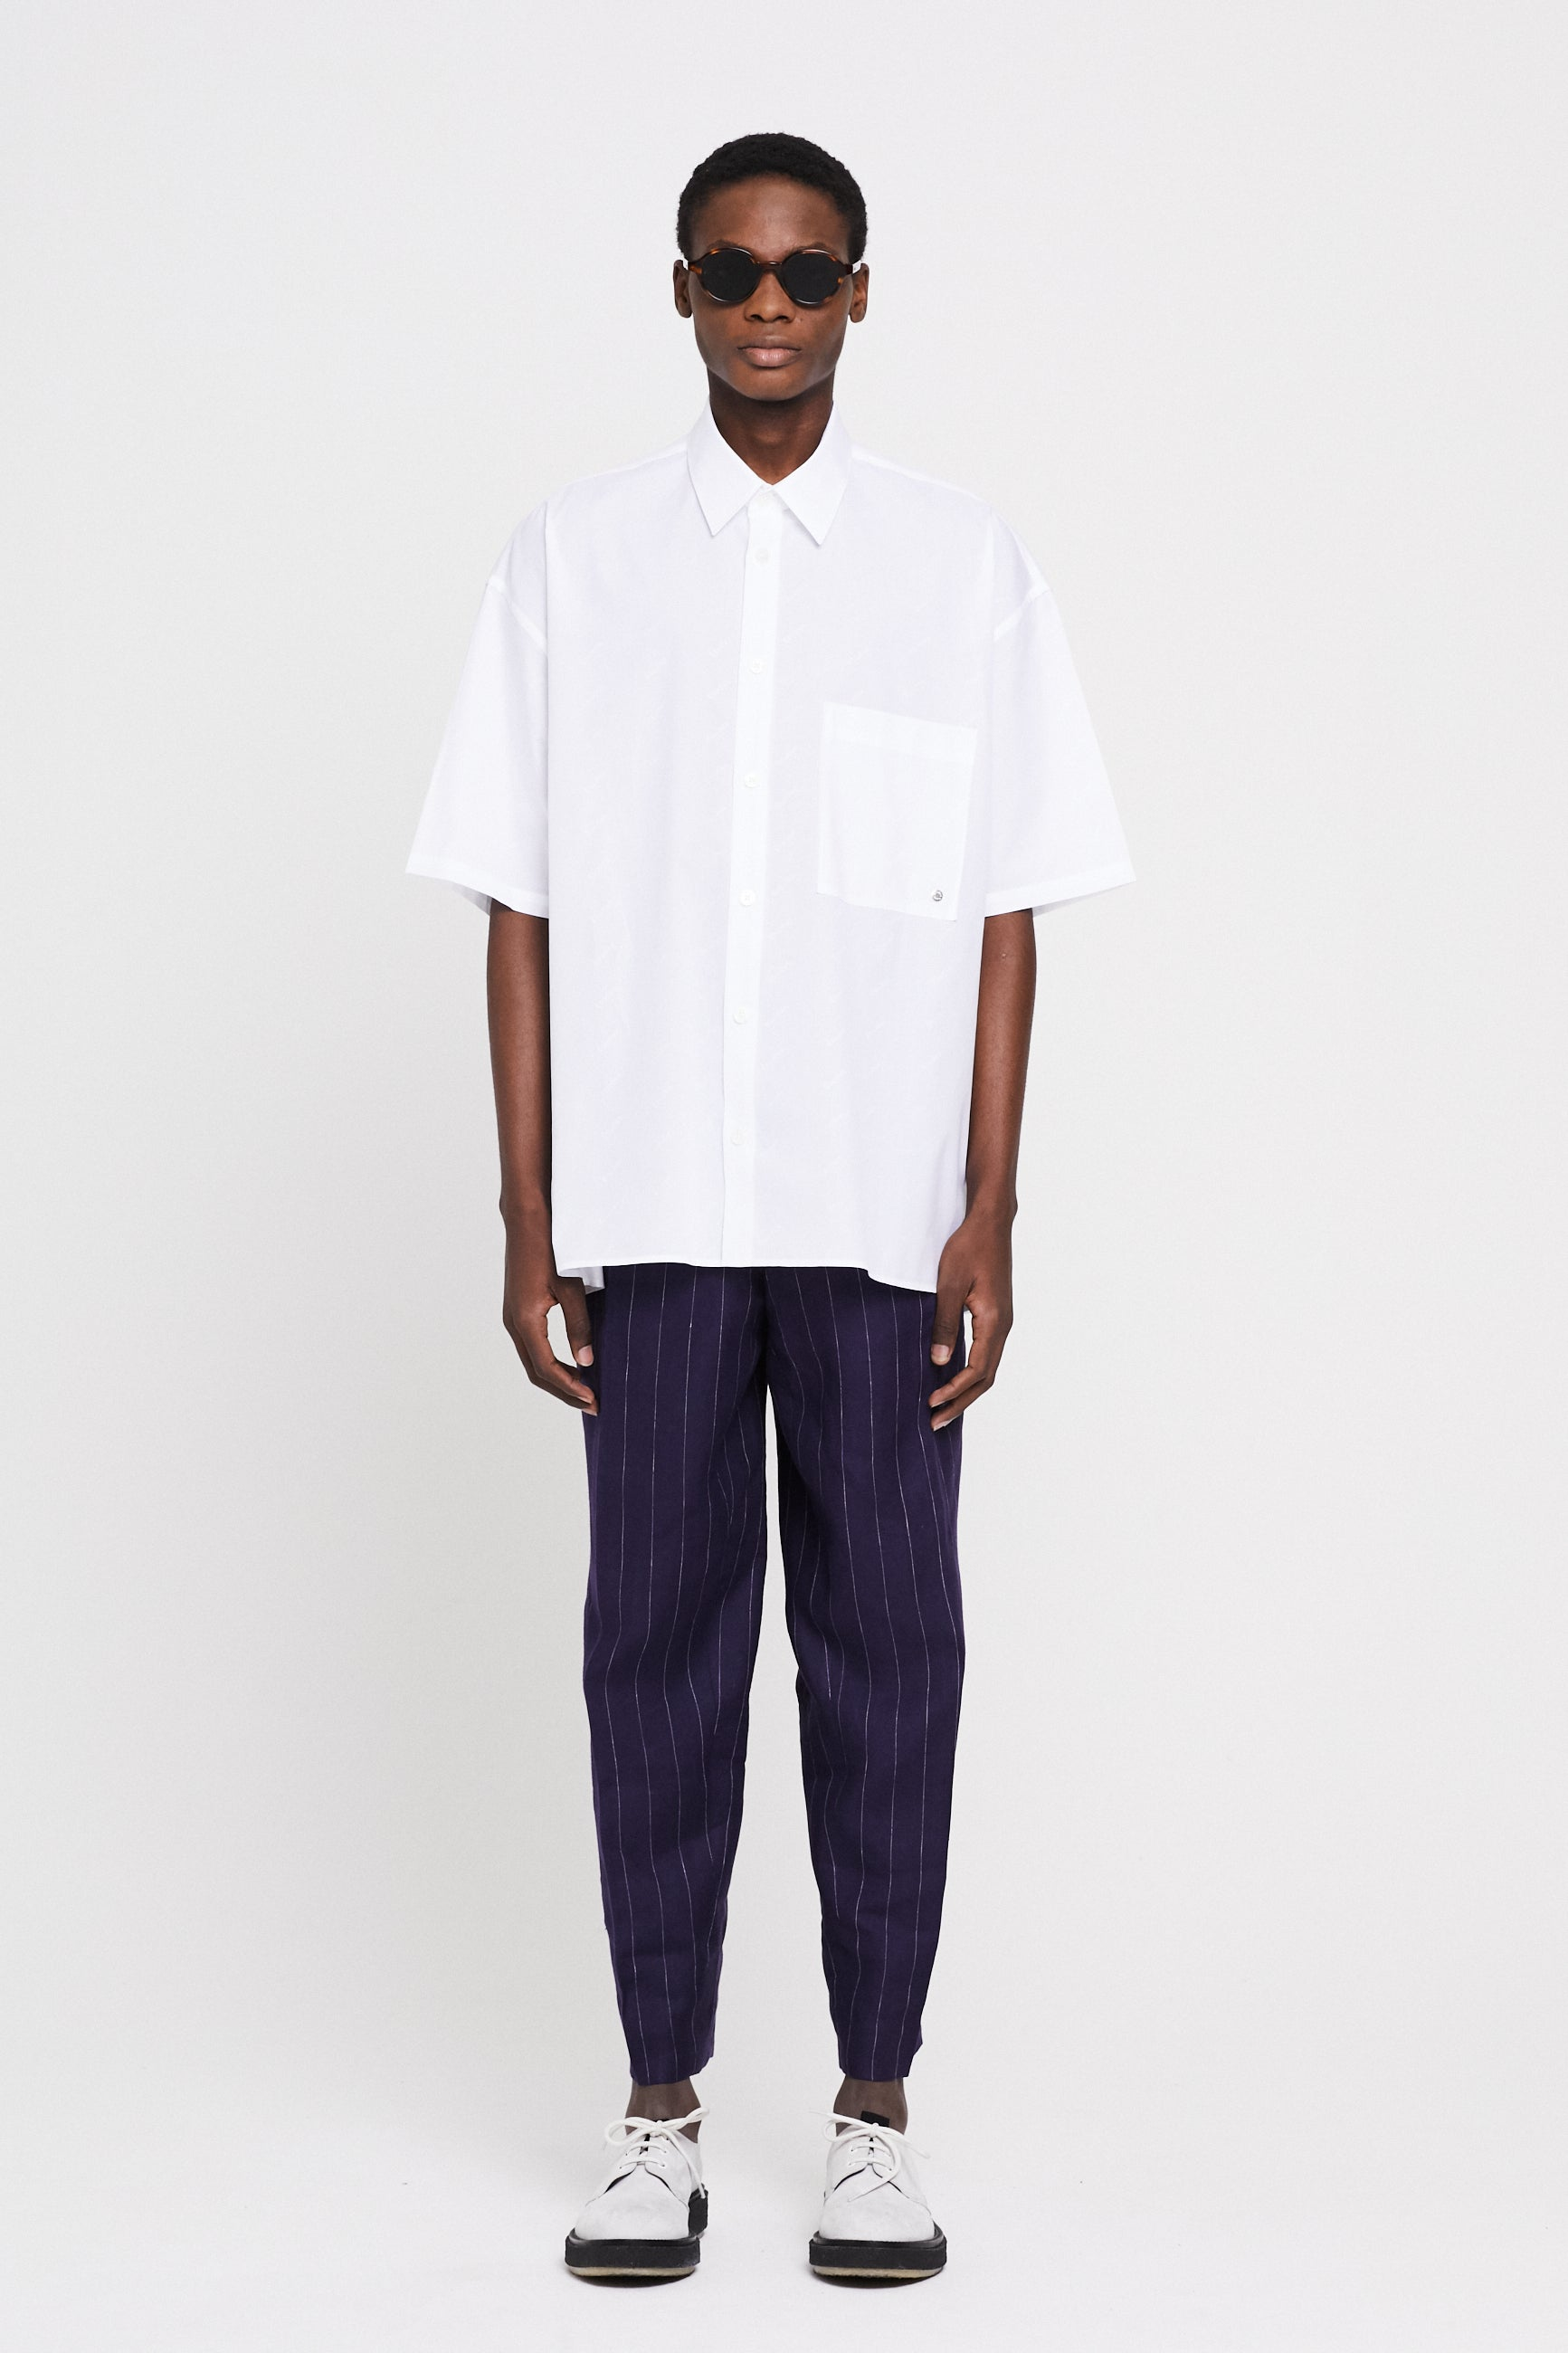 Études Illusion SS Monogram White Shirt 1